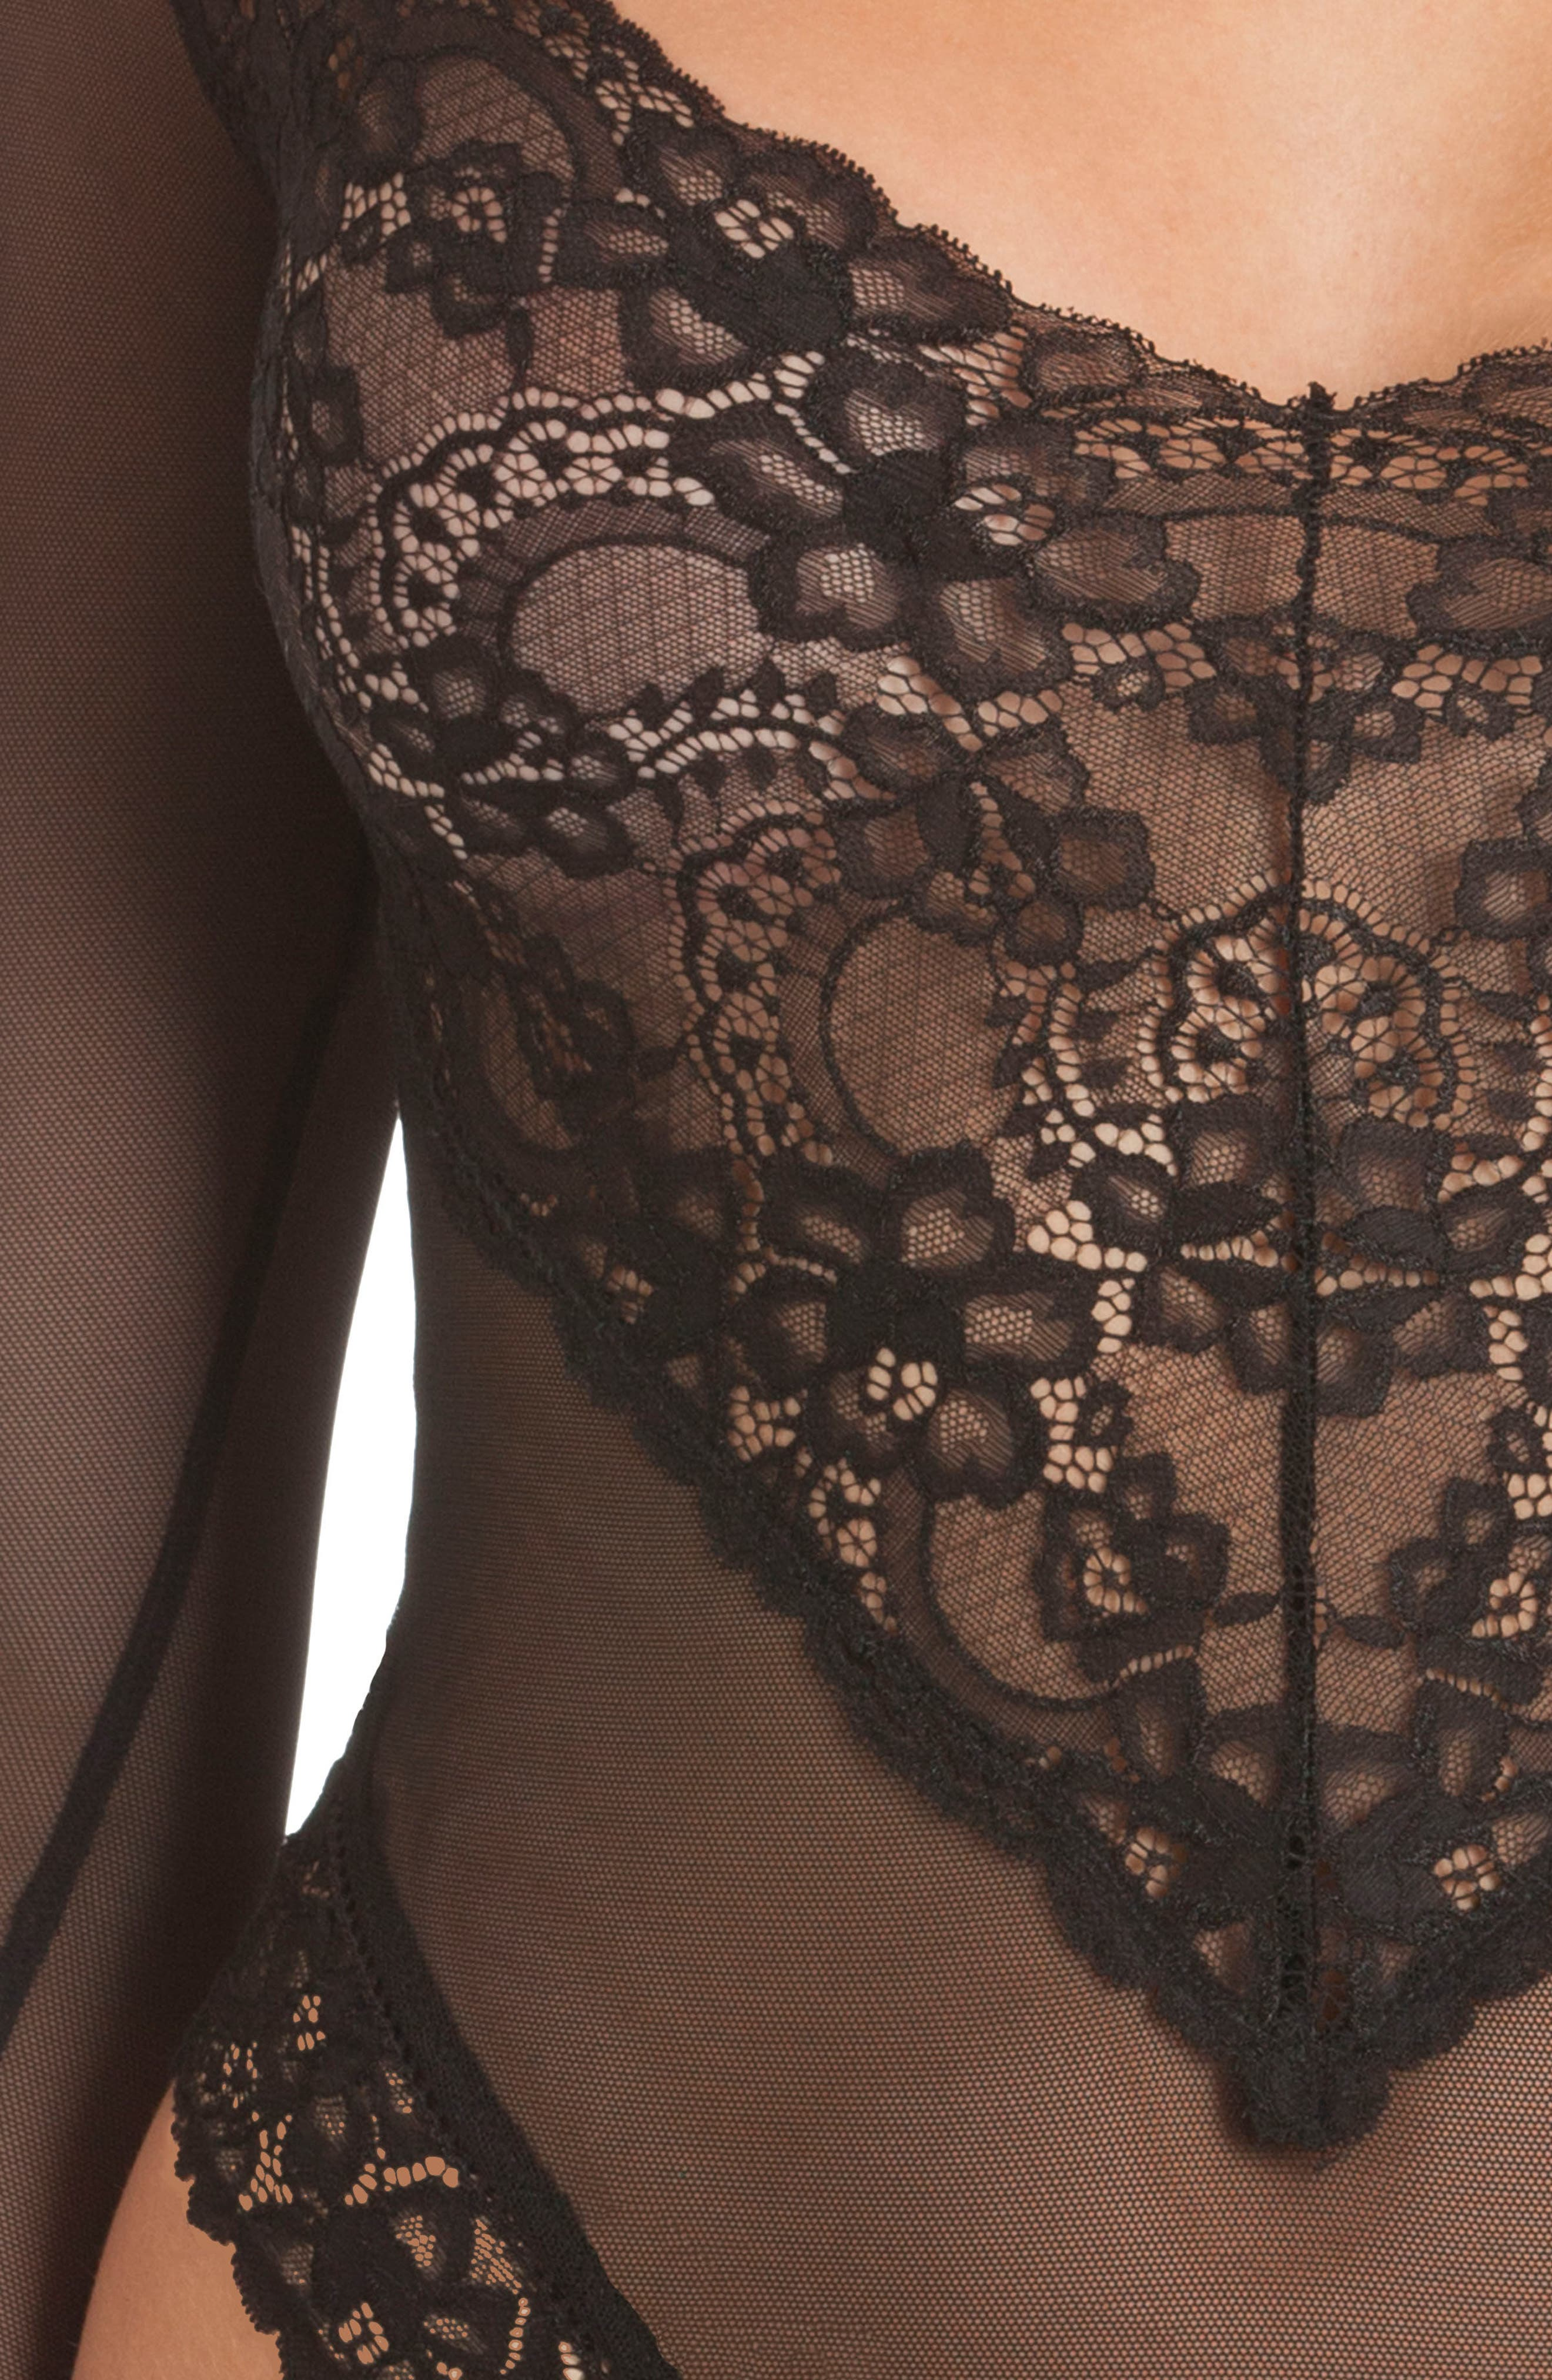 Mirage Long Sleeve Lace Teddy,                             Alternate thumbnail 4, color,                             001